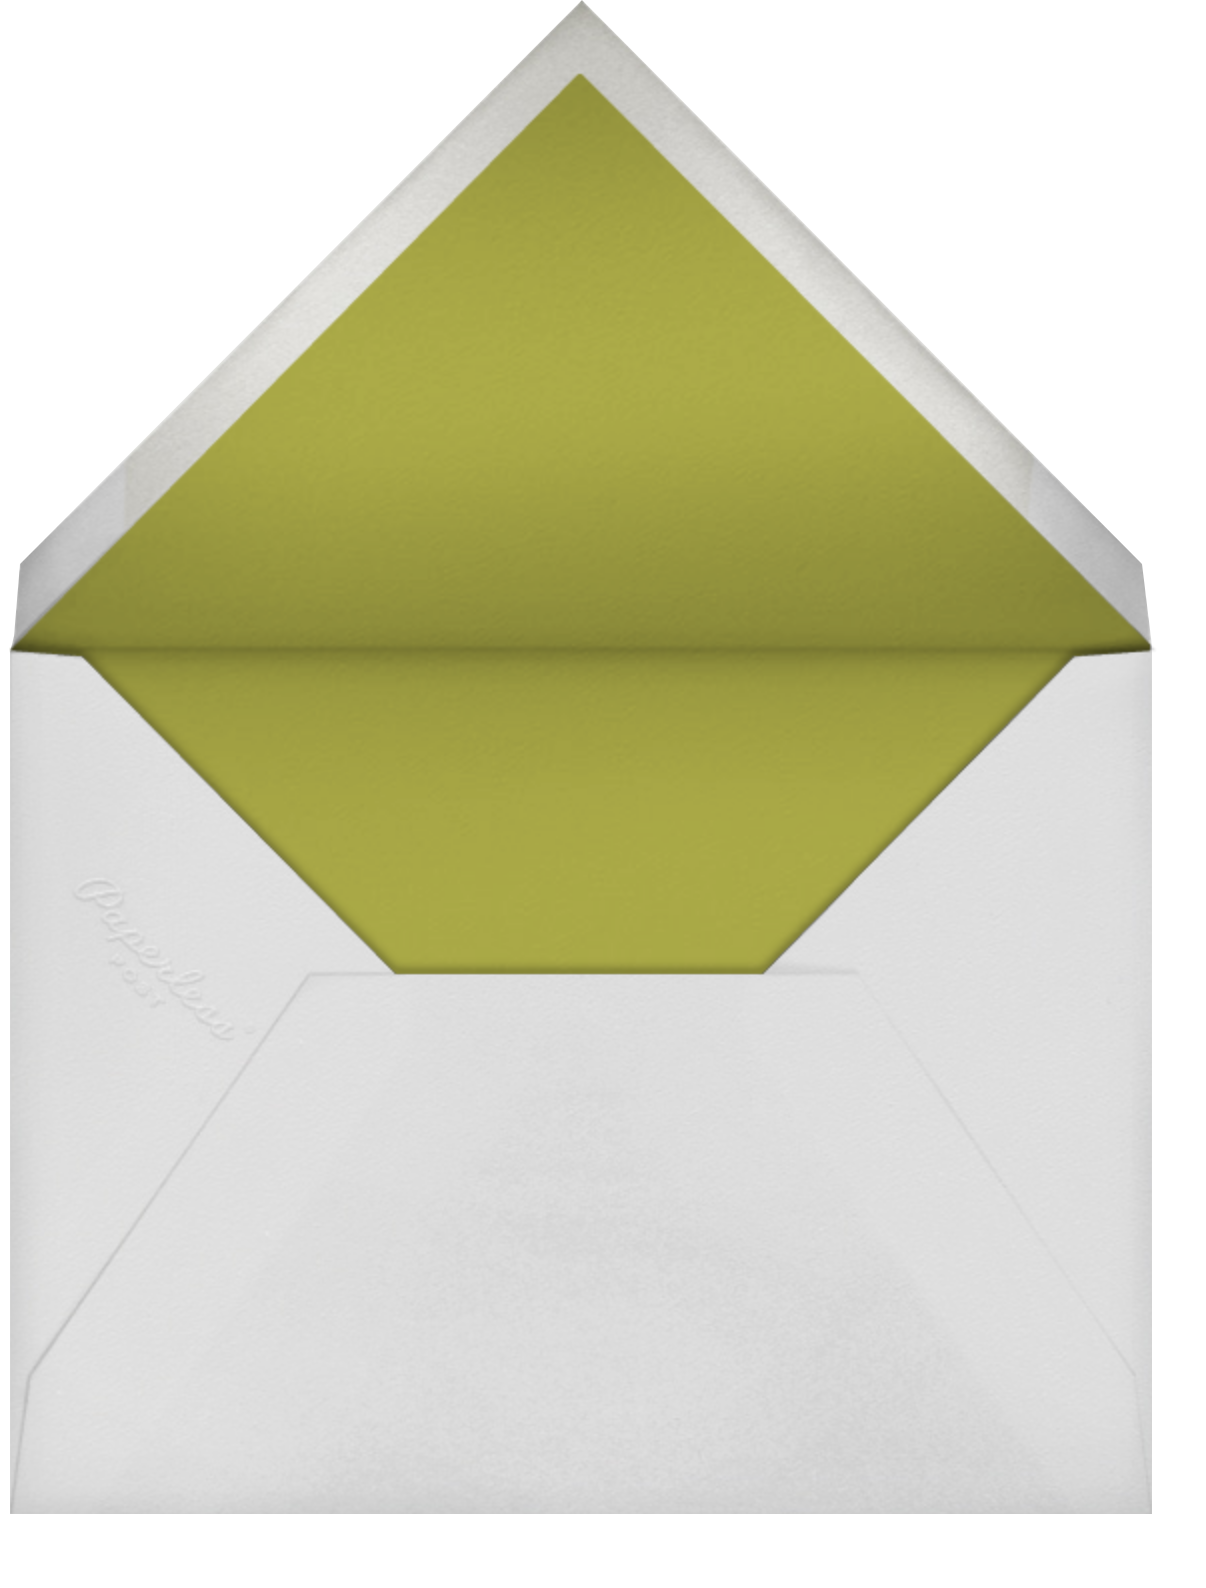 Let's Hang - Hunter Green - Rifle Paper Co. - General entertaining - envelope back